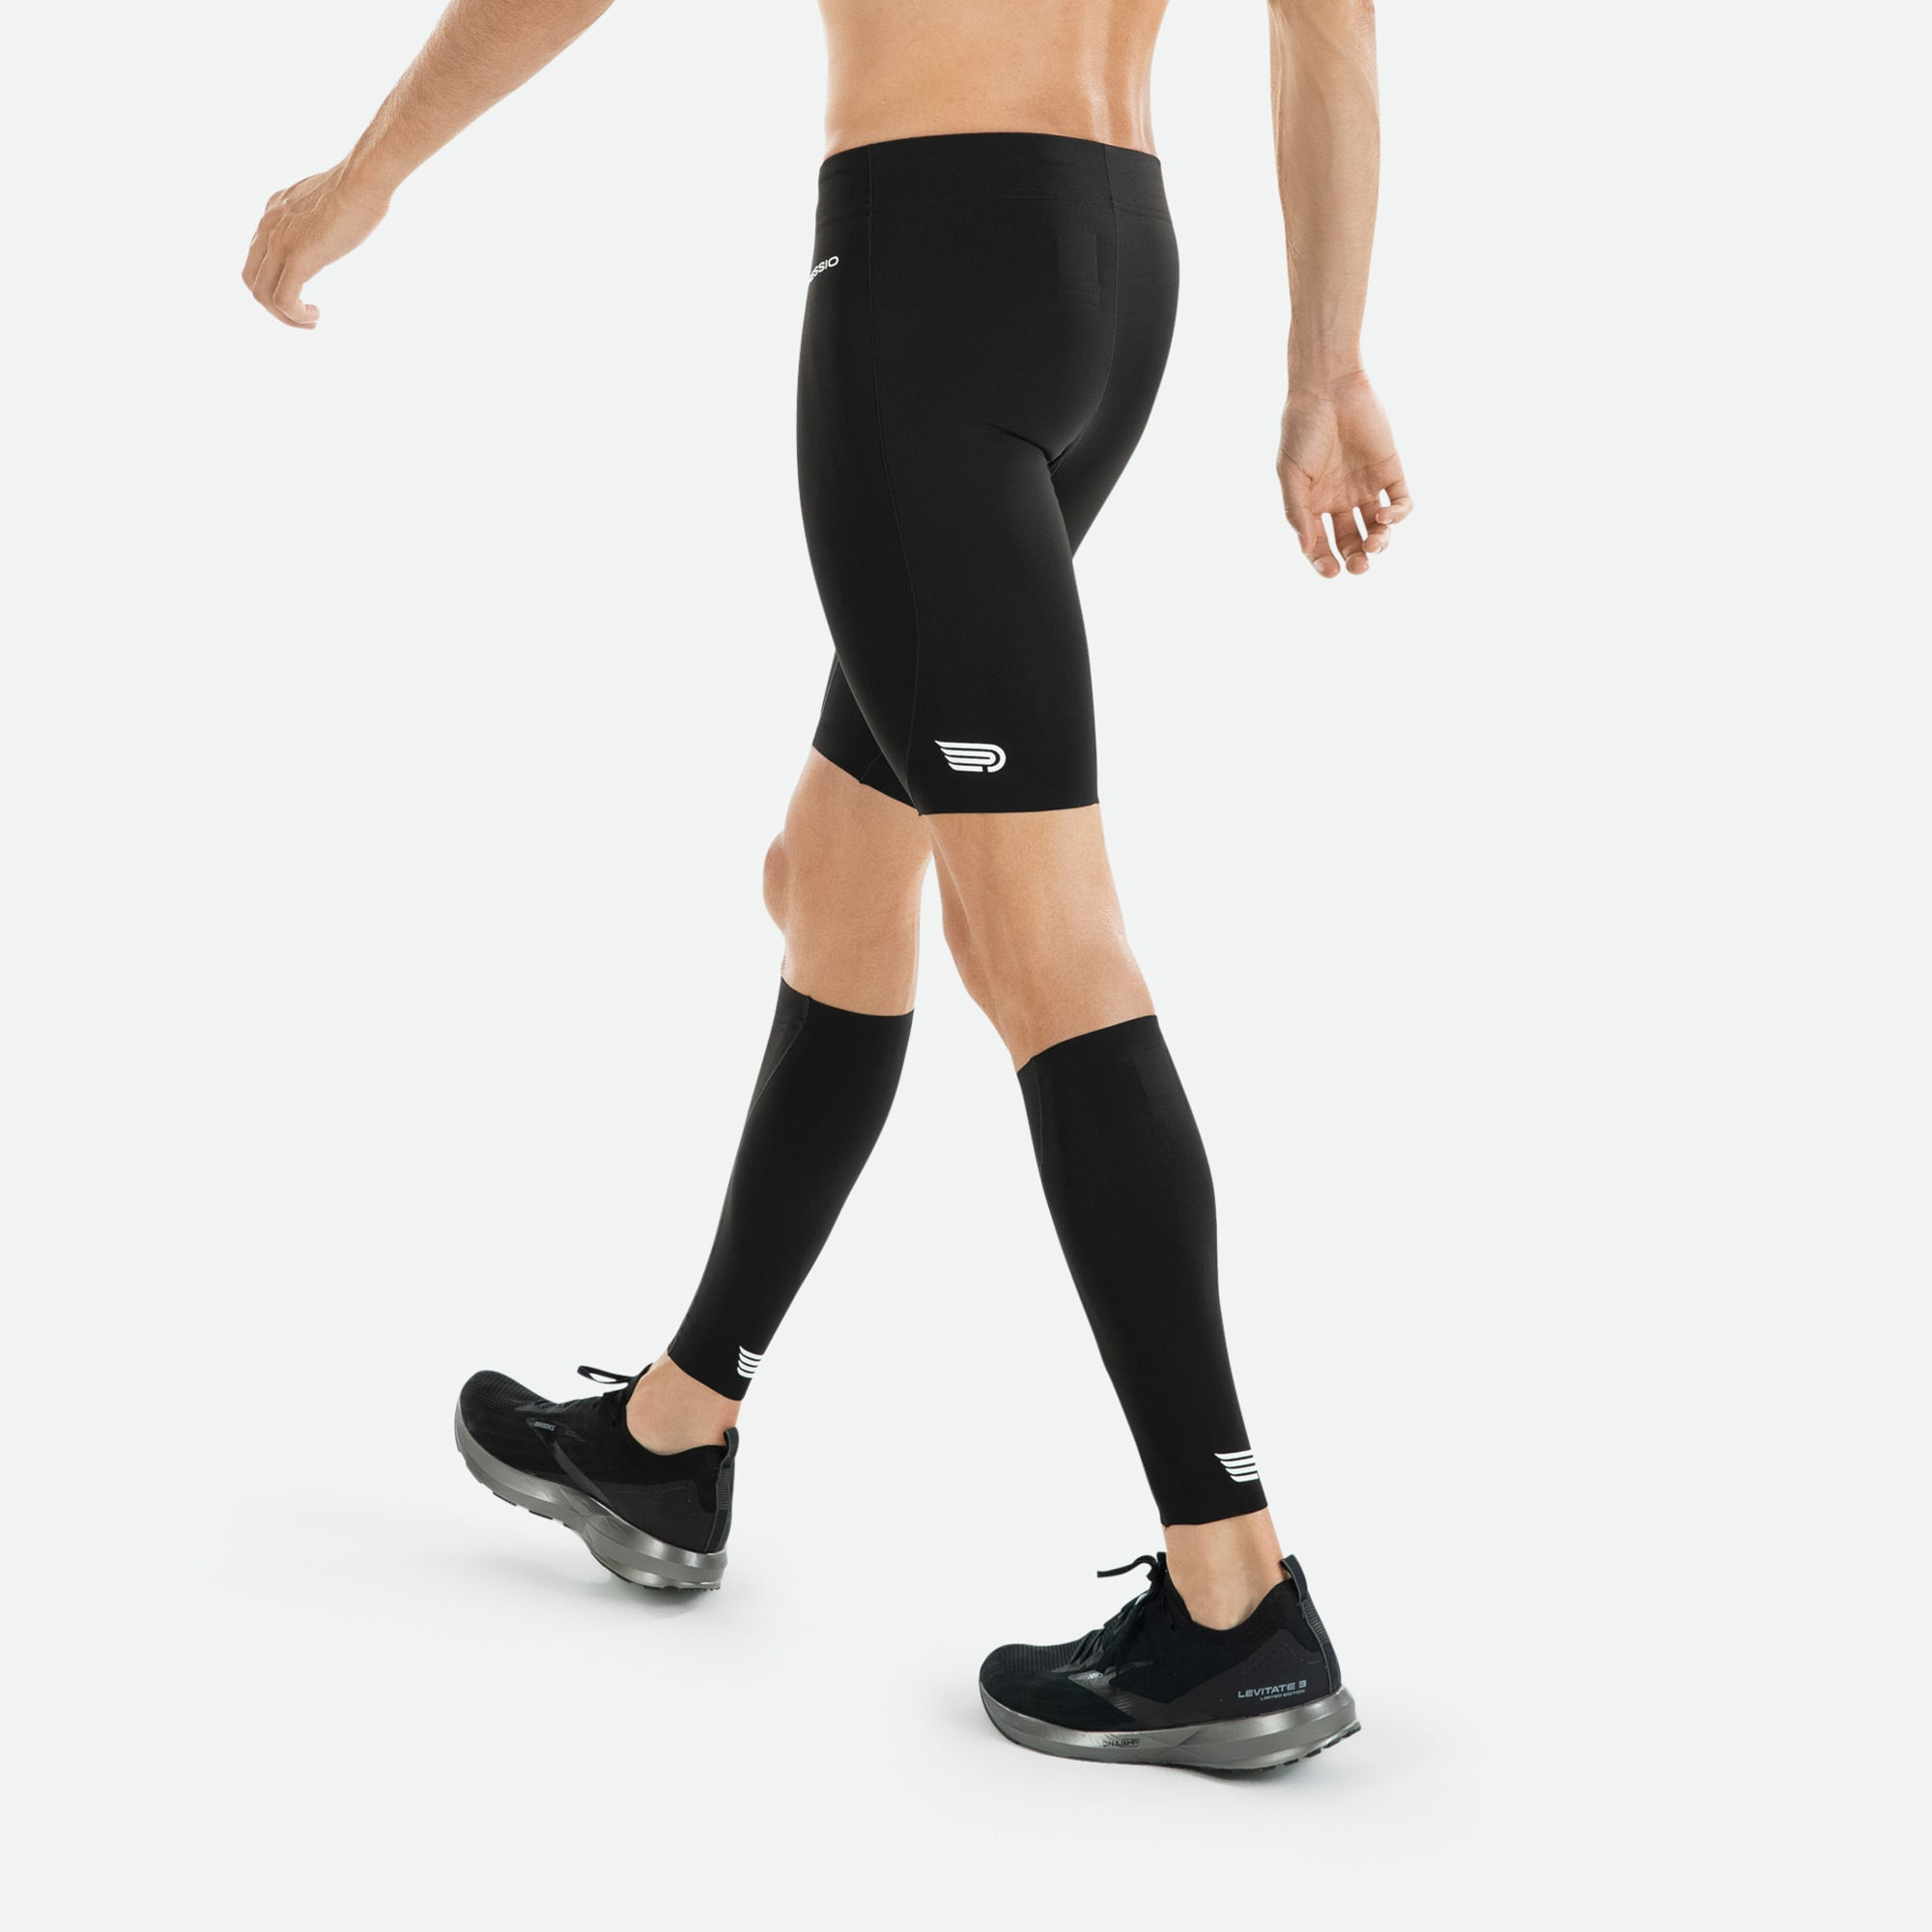 Align your muscles for greater power output, and help protect against overuse injuries wearing Pressio men's compression shorts.